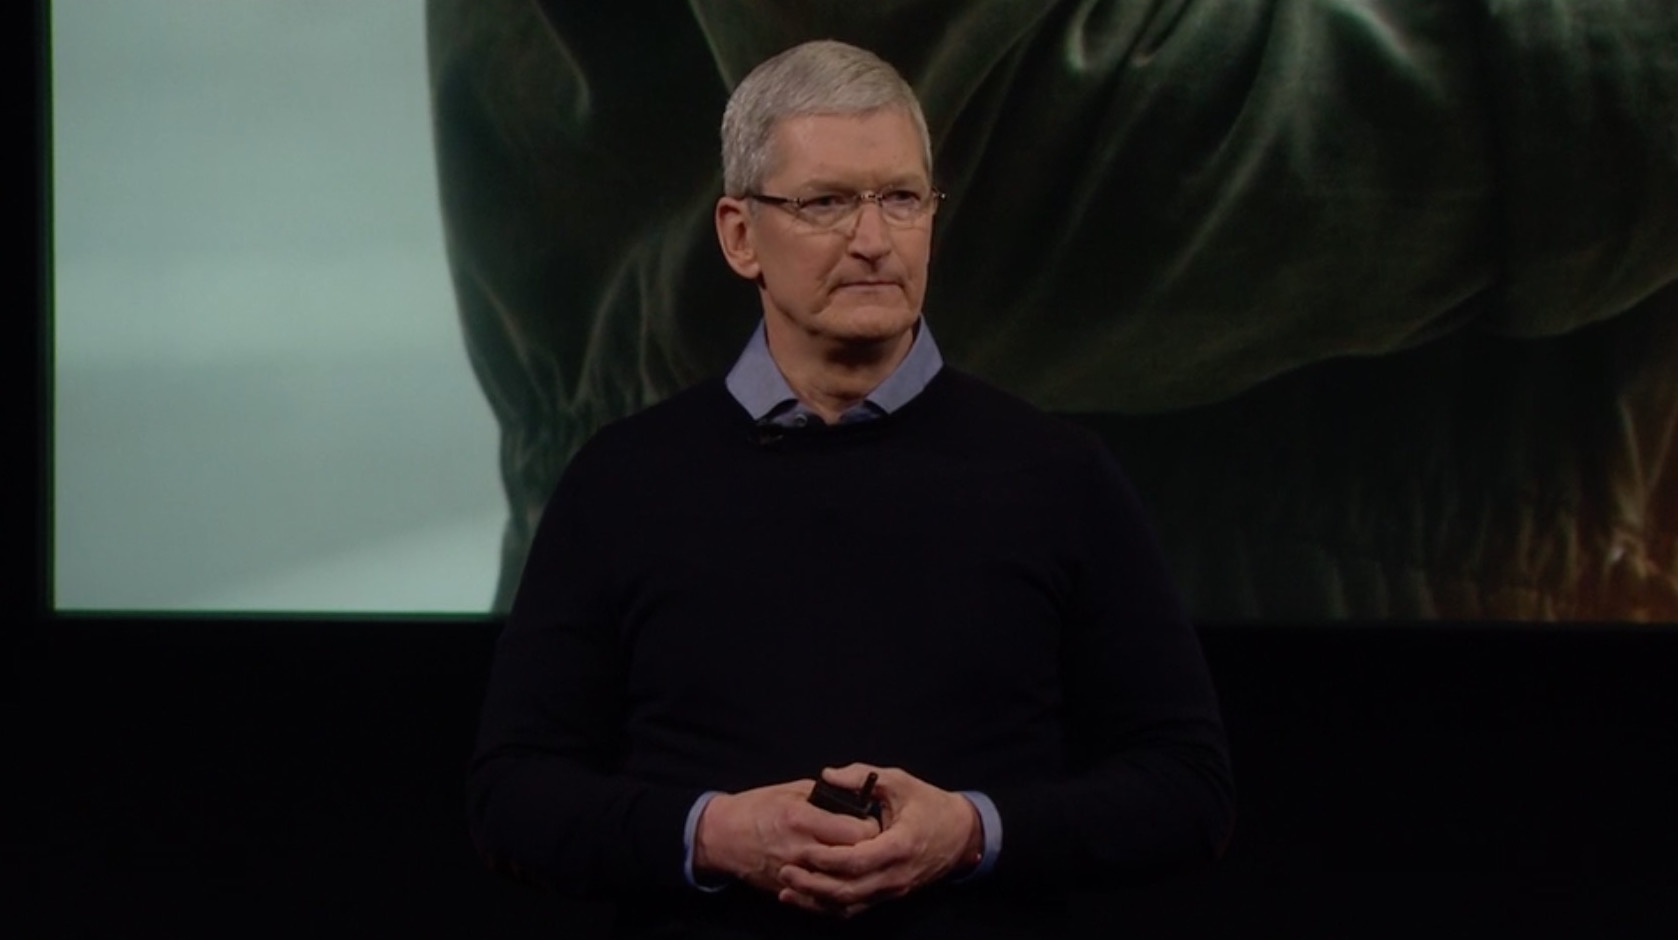 Tim Cook looking serious